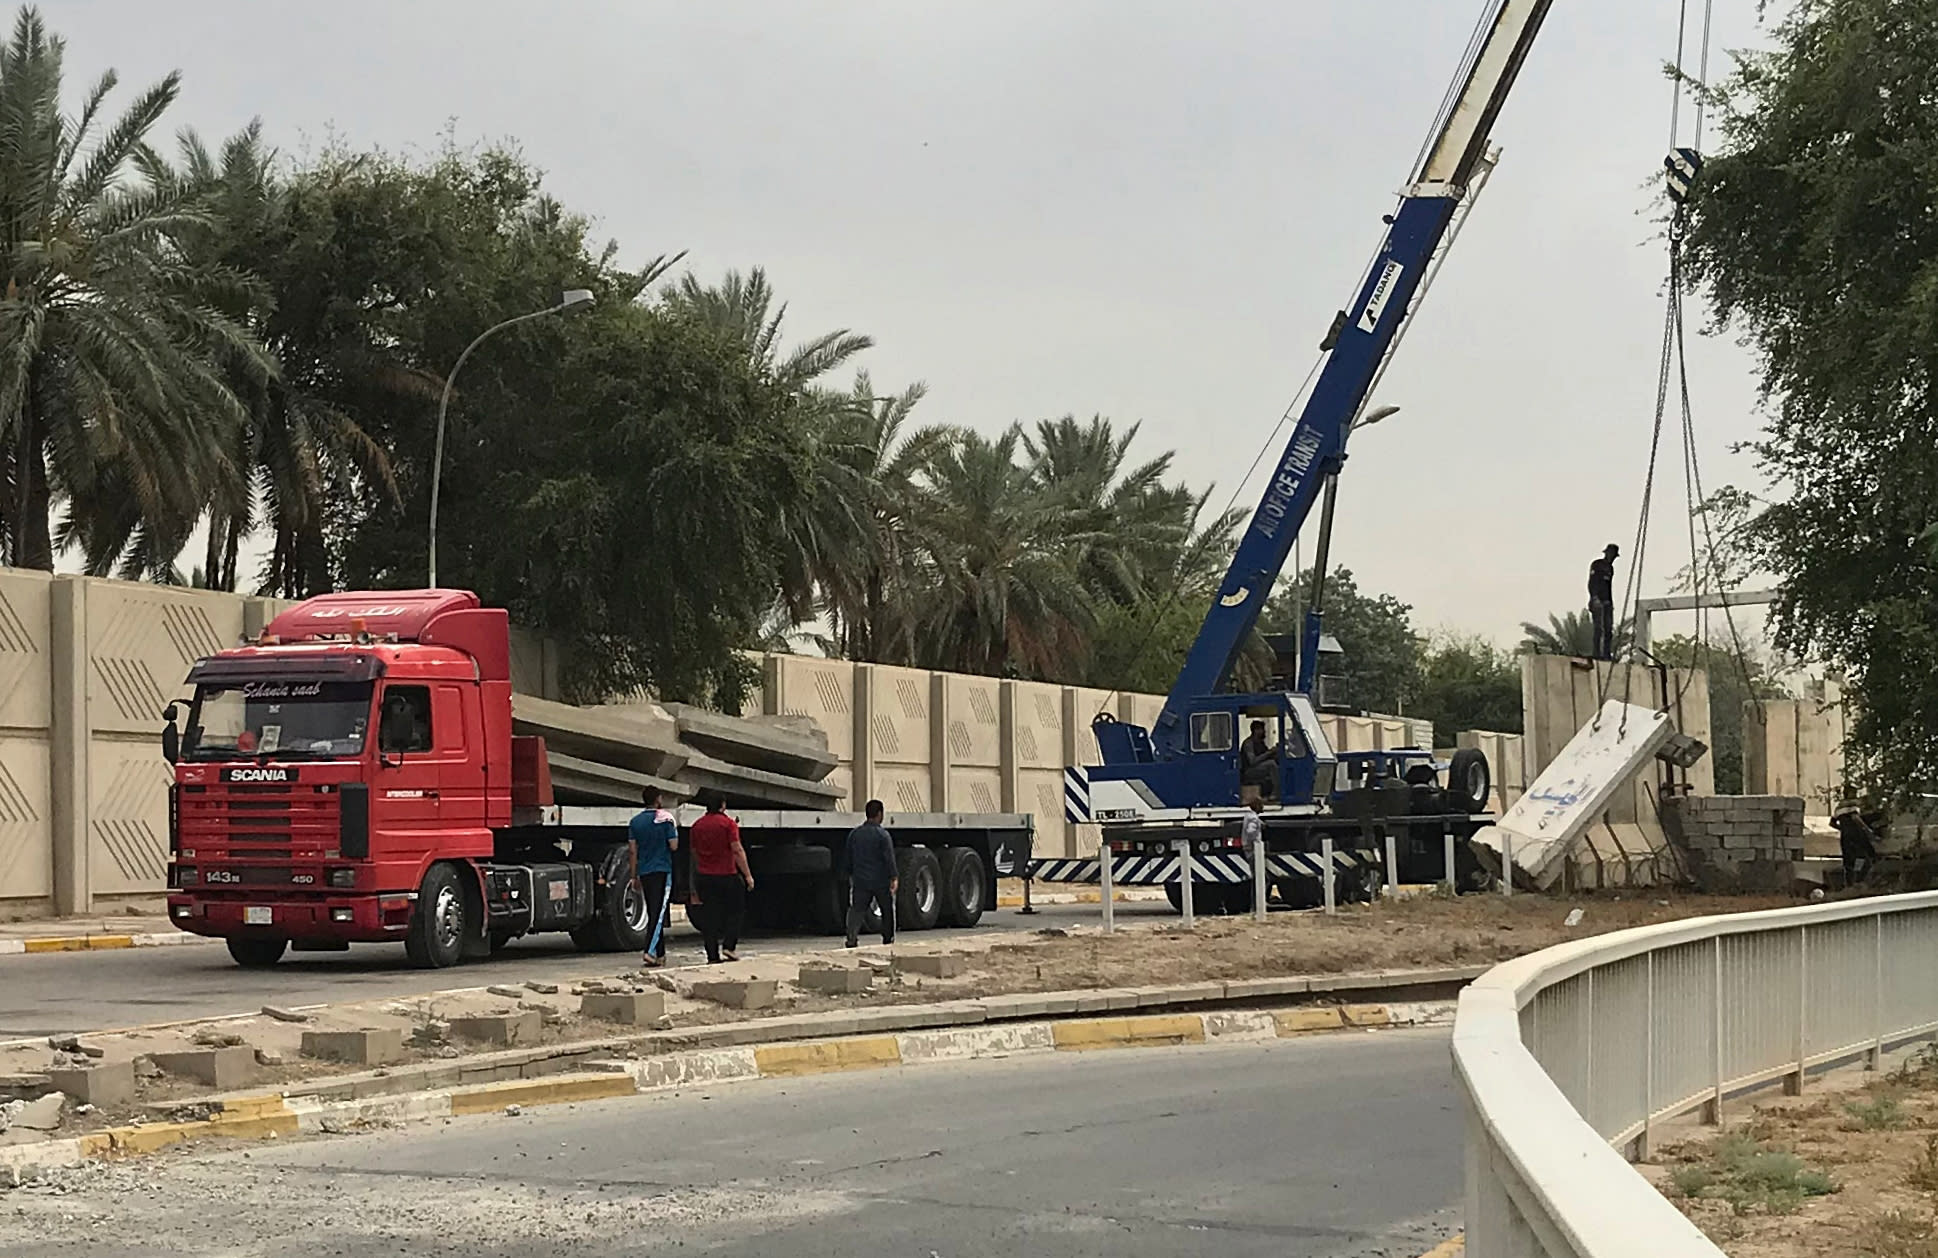 """In this Tuesday, May 28, 2019 photo, Iraqi security forces remove concrete blast walls at the Green Zone in Baghdad, Iraq. The Green Zone has been a barometer for tension and conflict in Iraq for nearly two decades. The 4-square mile (10-square kilometer), heavily guarded strip on the Tigris River was known as """"Little America"""" following the 2003 U.S.-led invasion that toppled dictator Saddam Hussein. It then became a hated symbol of the country's inequality, fueling the perception among Iraqis that their government is out of touch. (AP Photo/Ali Abdul Hassan)"""